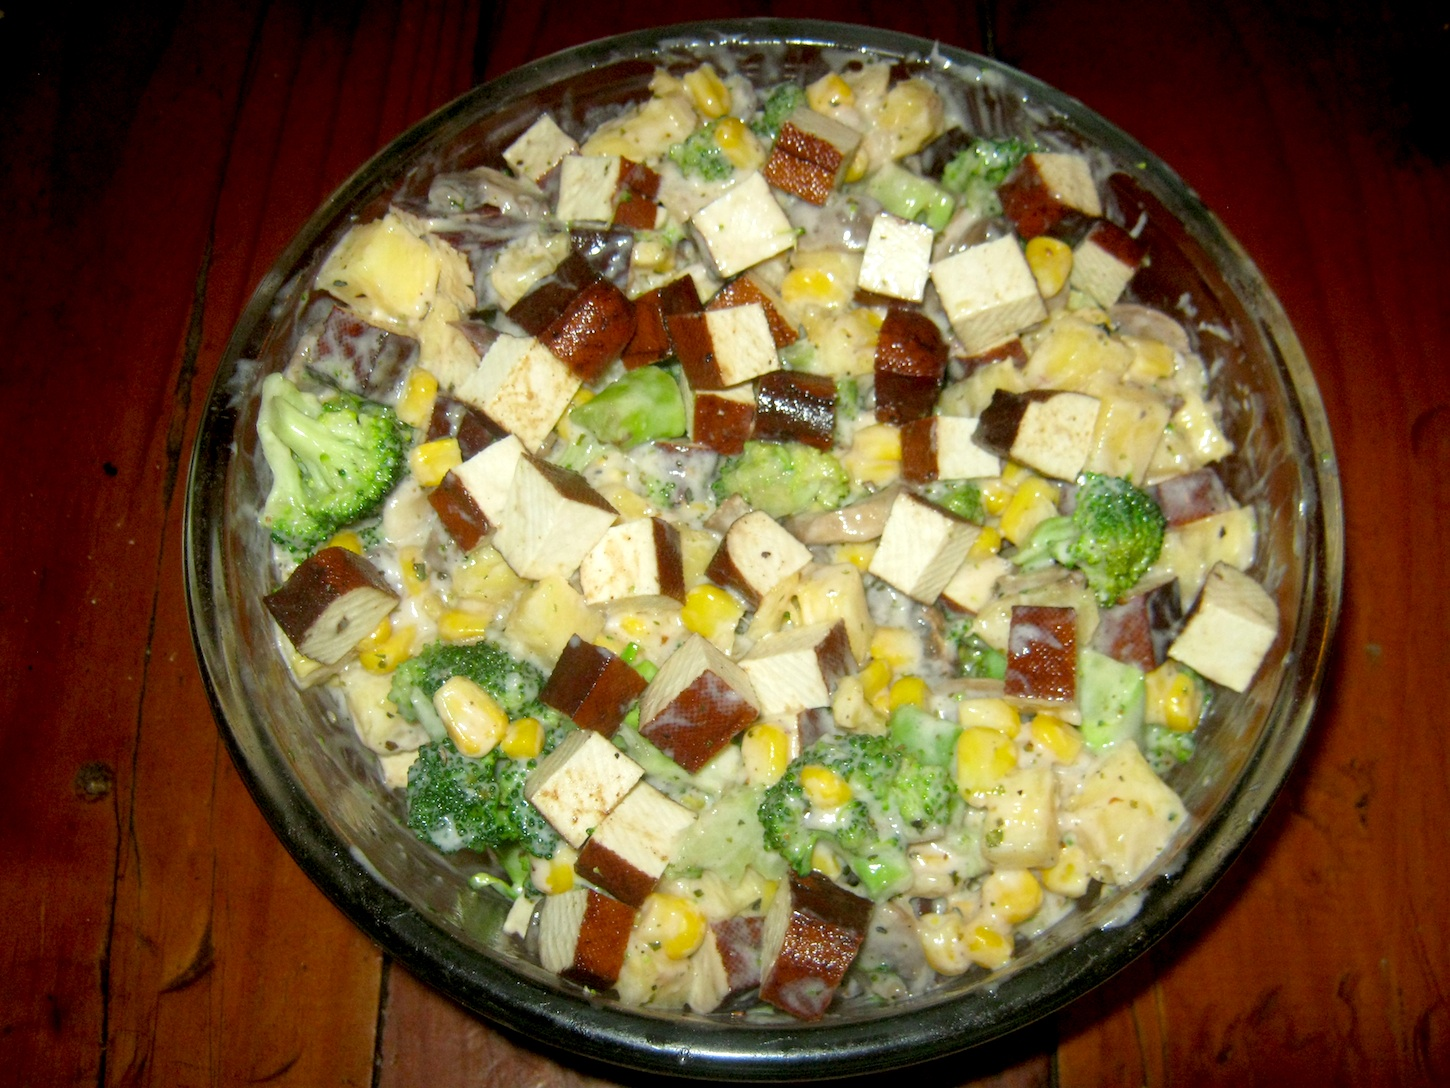 Smoked Tofu Salad in glass bowl